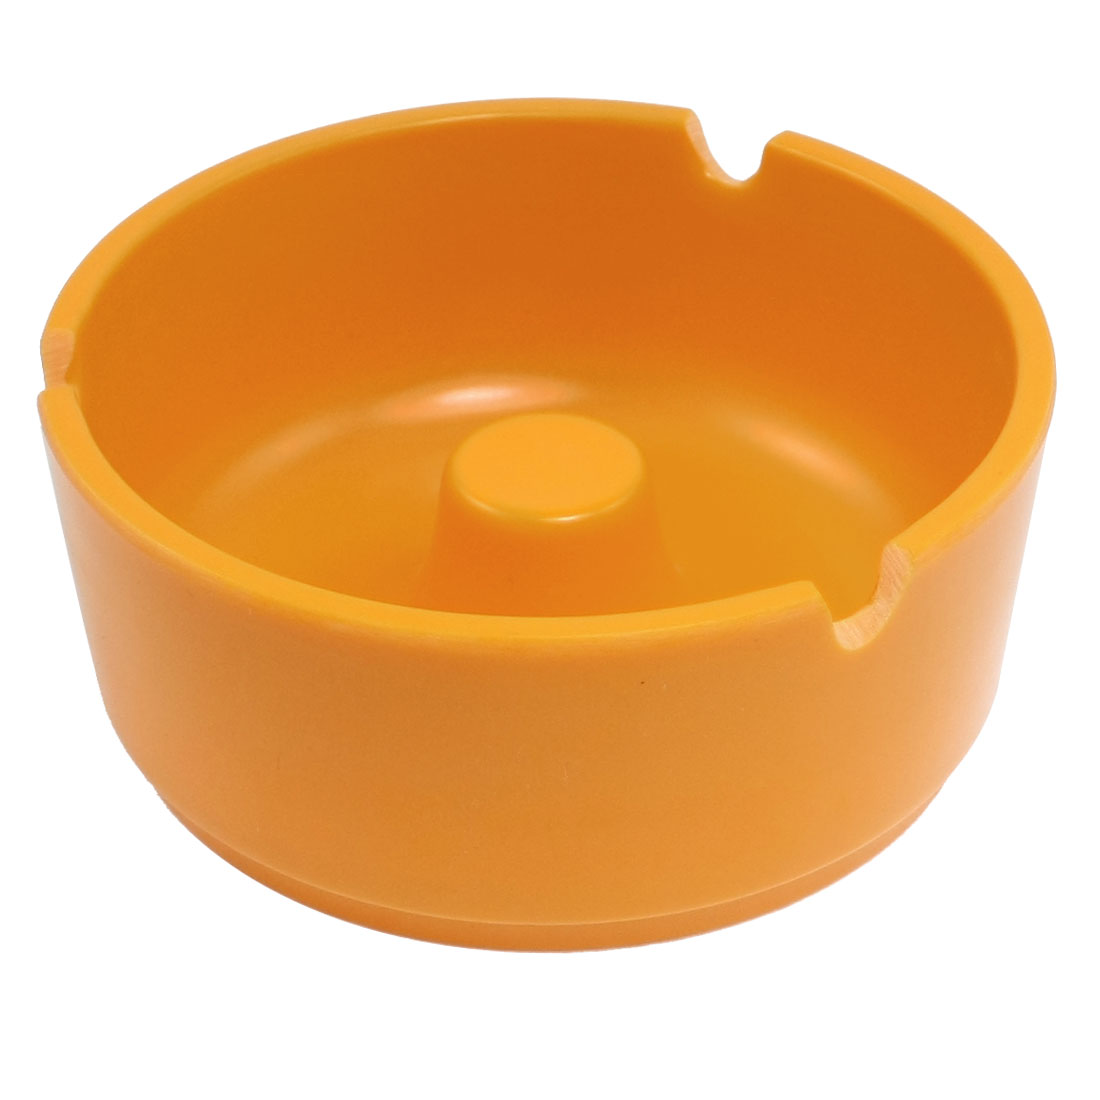 Restaurant Hotel Bowl Shaped Orange Plastic Ash Holder Ashtray